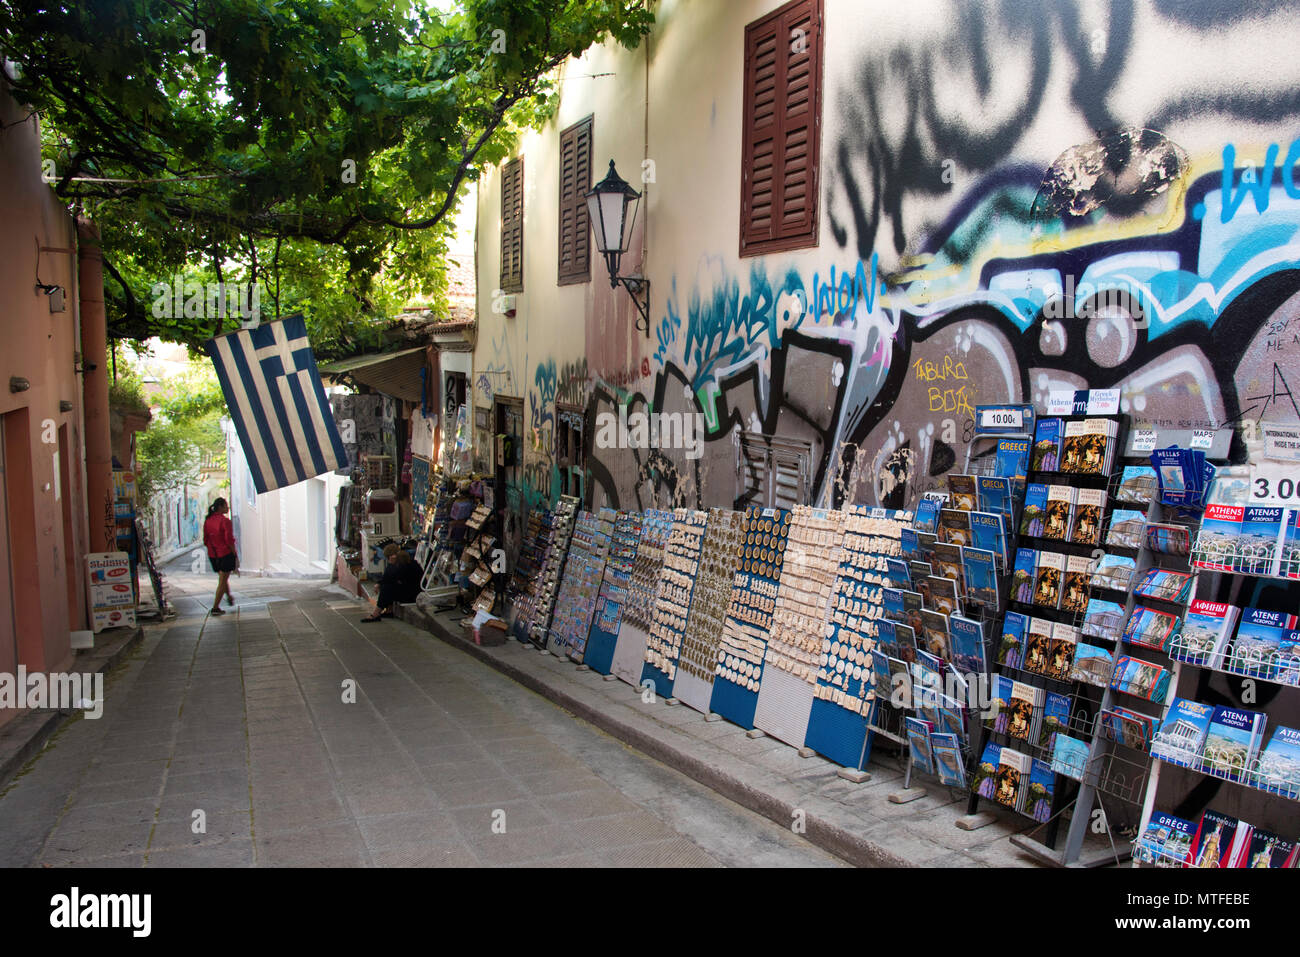 Souveniers for sale in the Plaka neighborhood of Athens, Greece - Stock Image